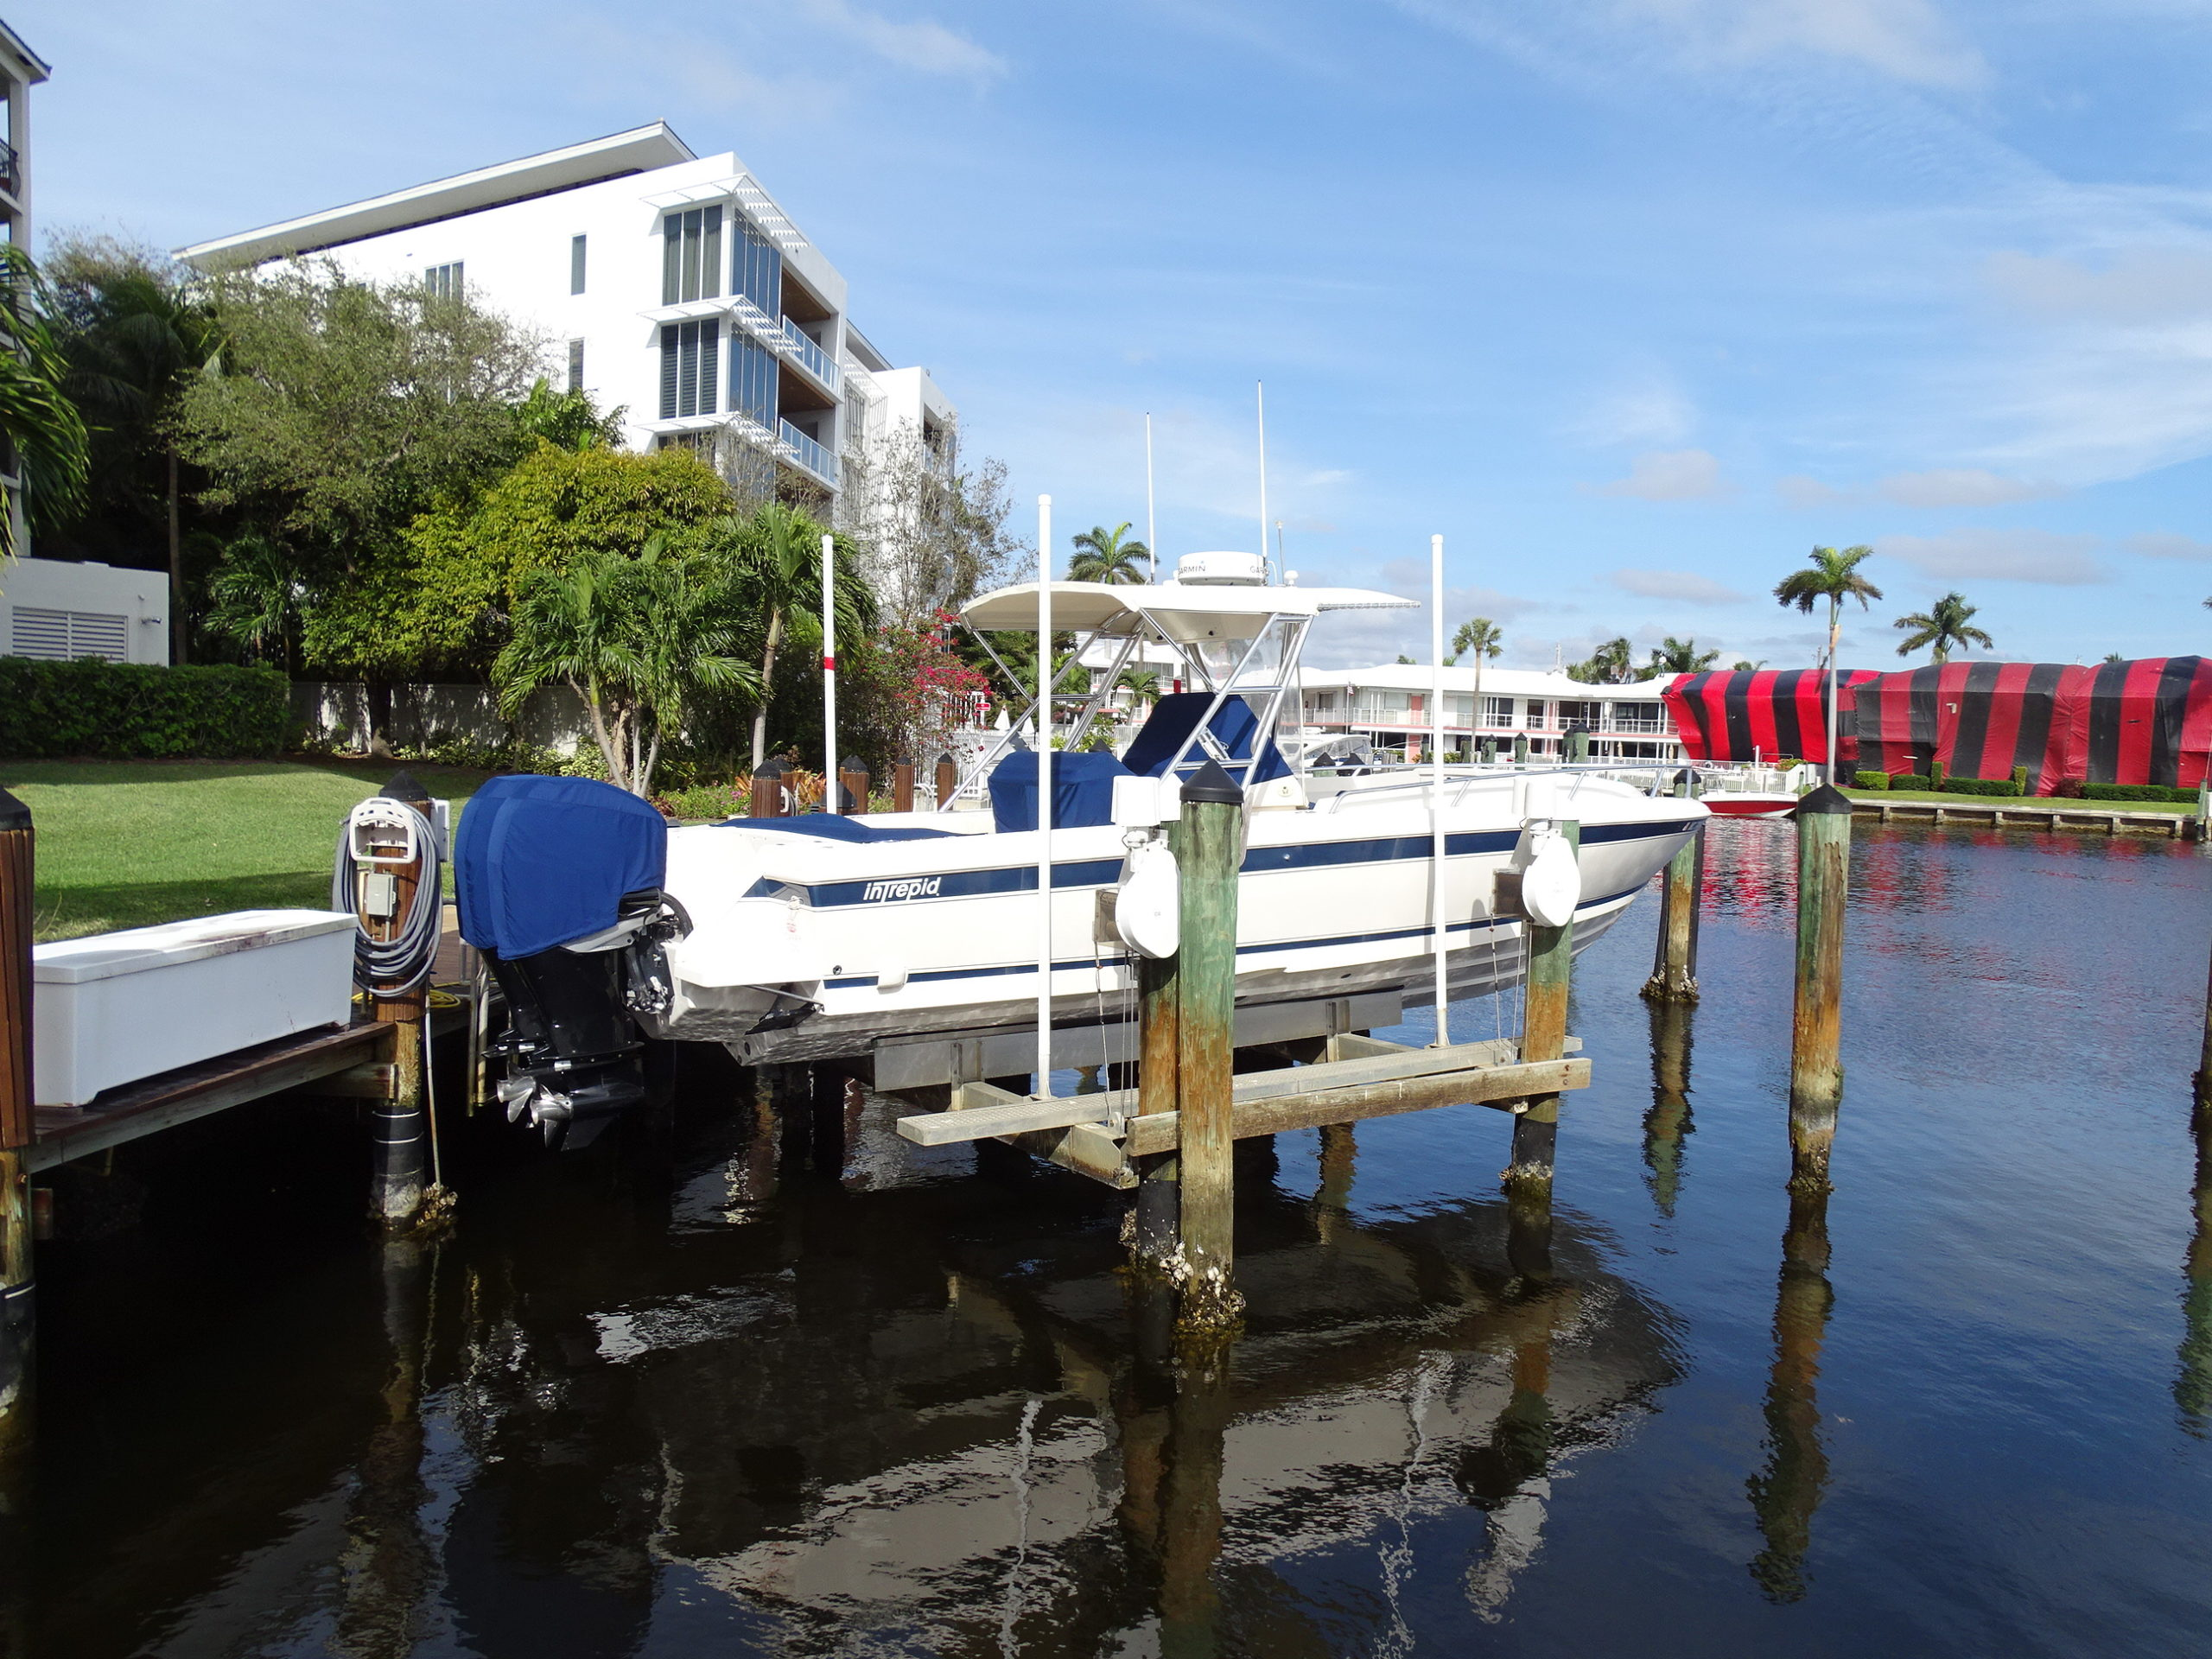 01 White Intrepid with twin 300 Mercury Verado engines with only 215 hours of use for sale